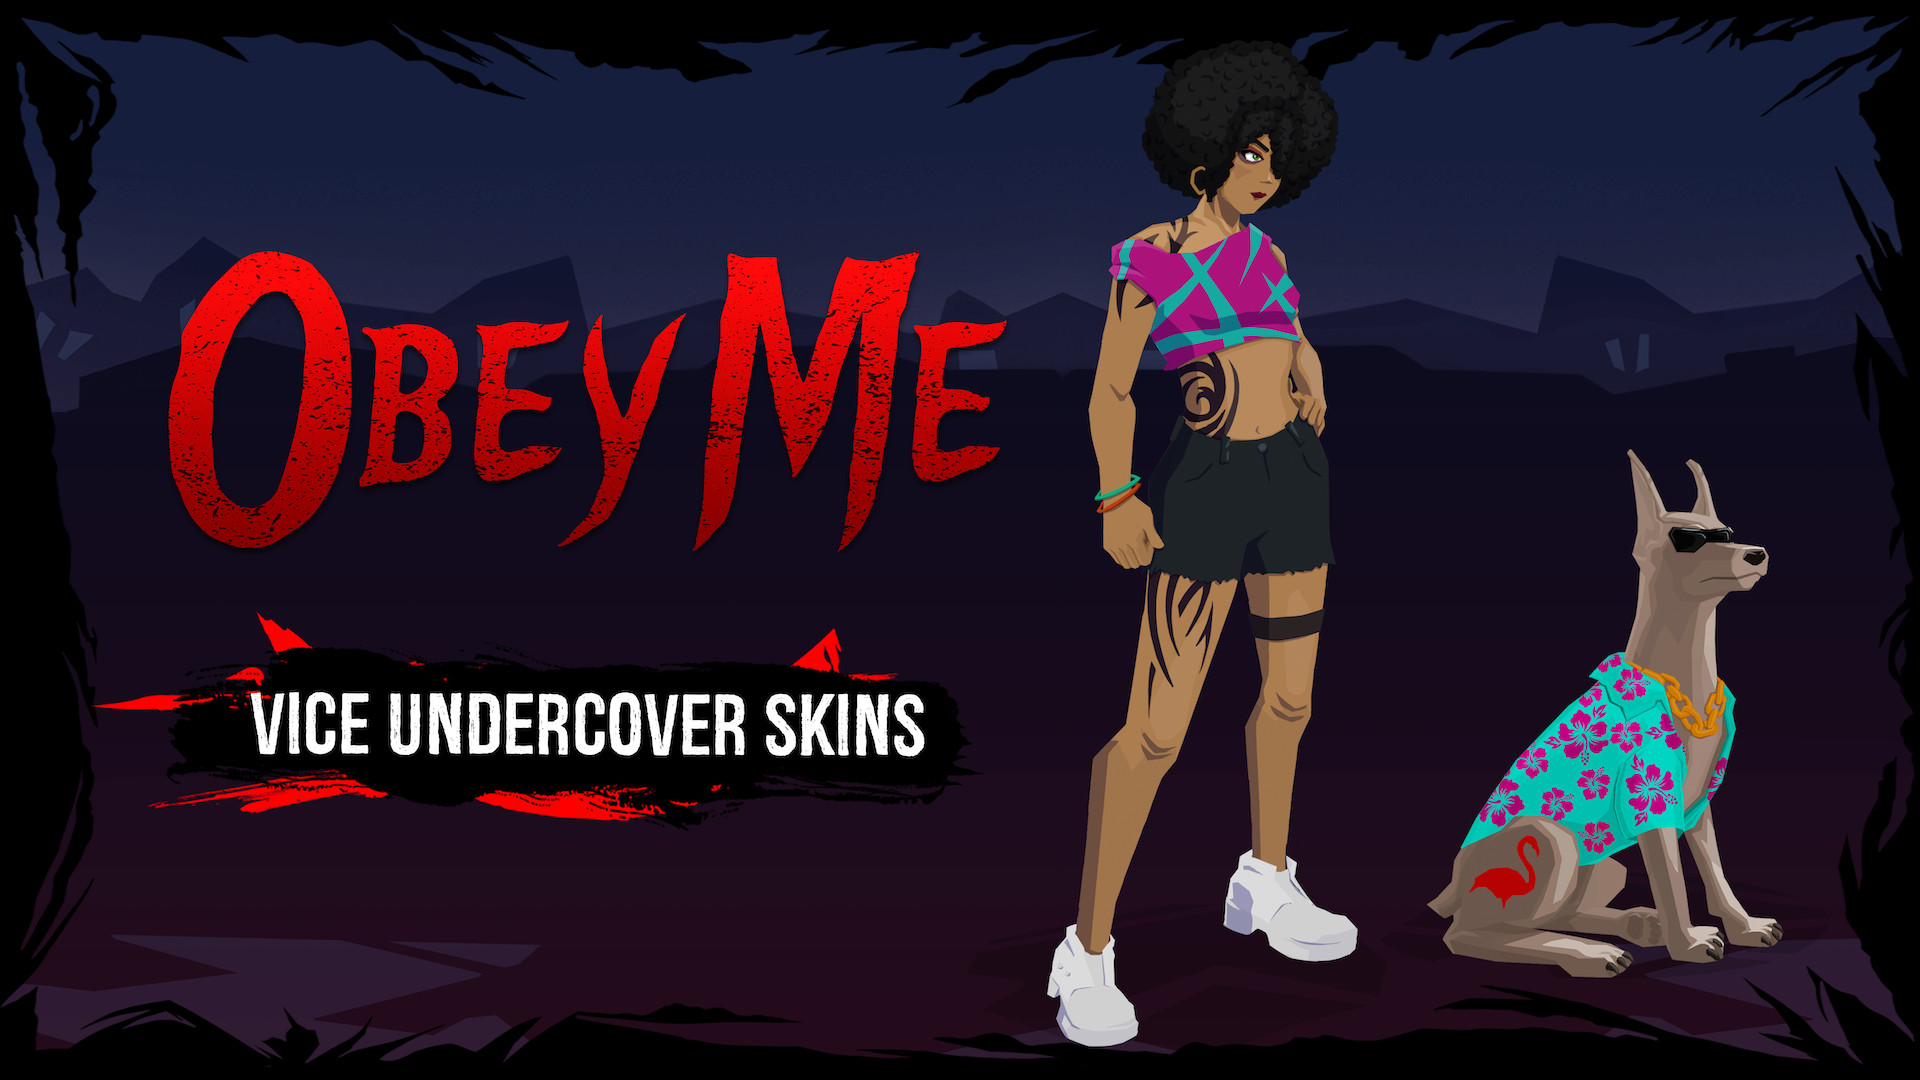 Obey Me - Vice Undercover Skin Pack screenshot